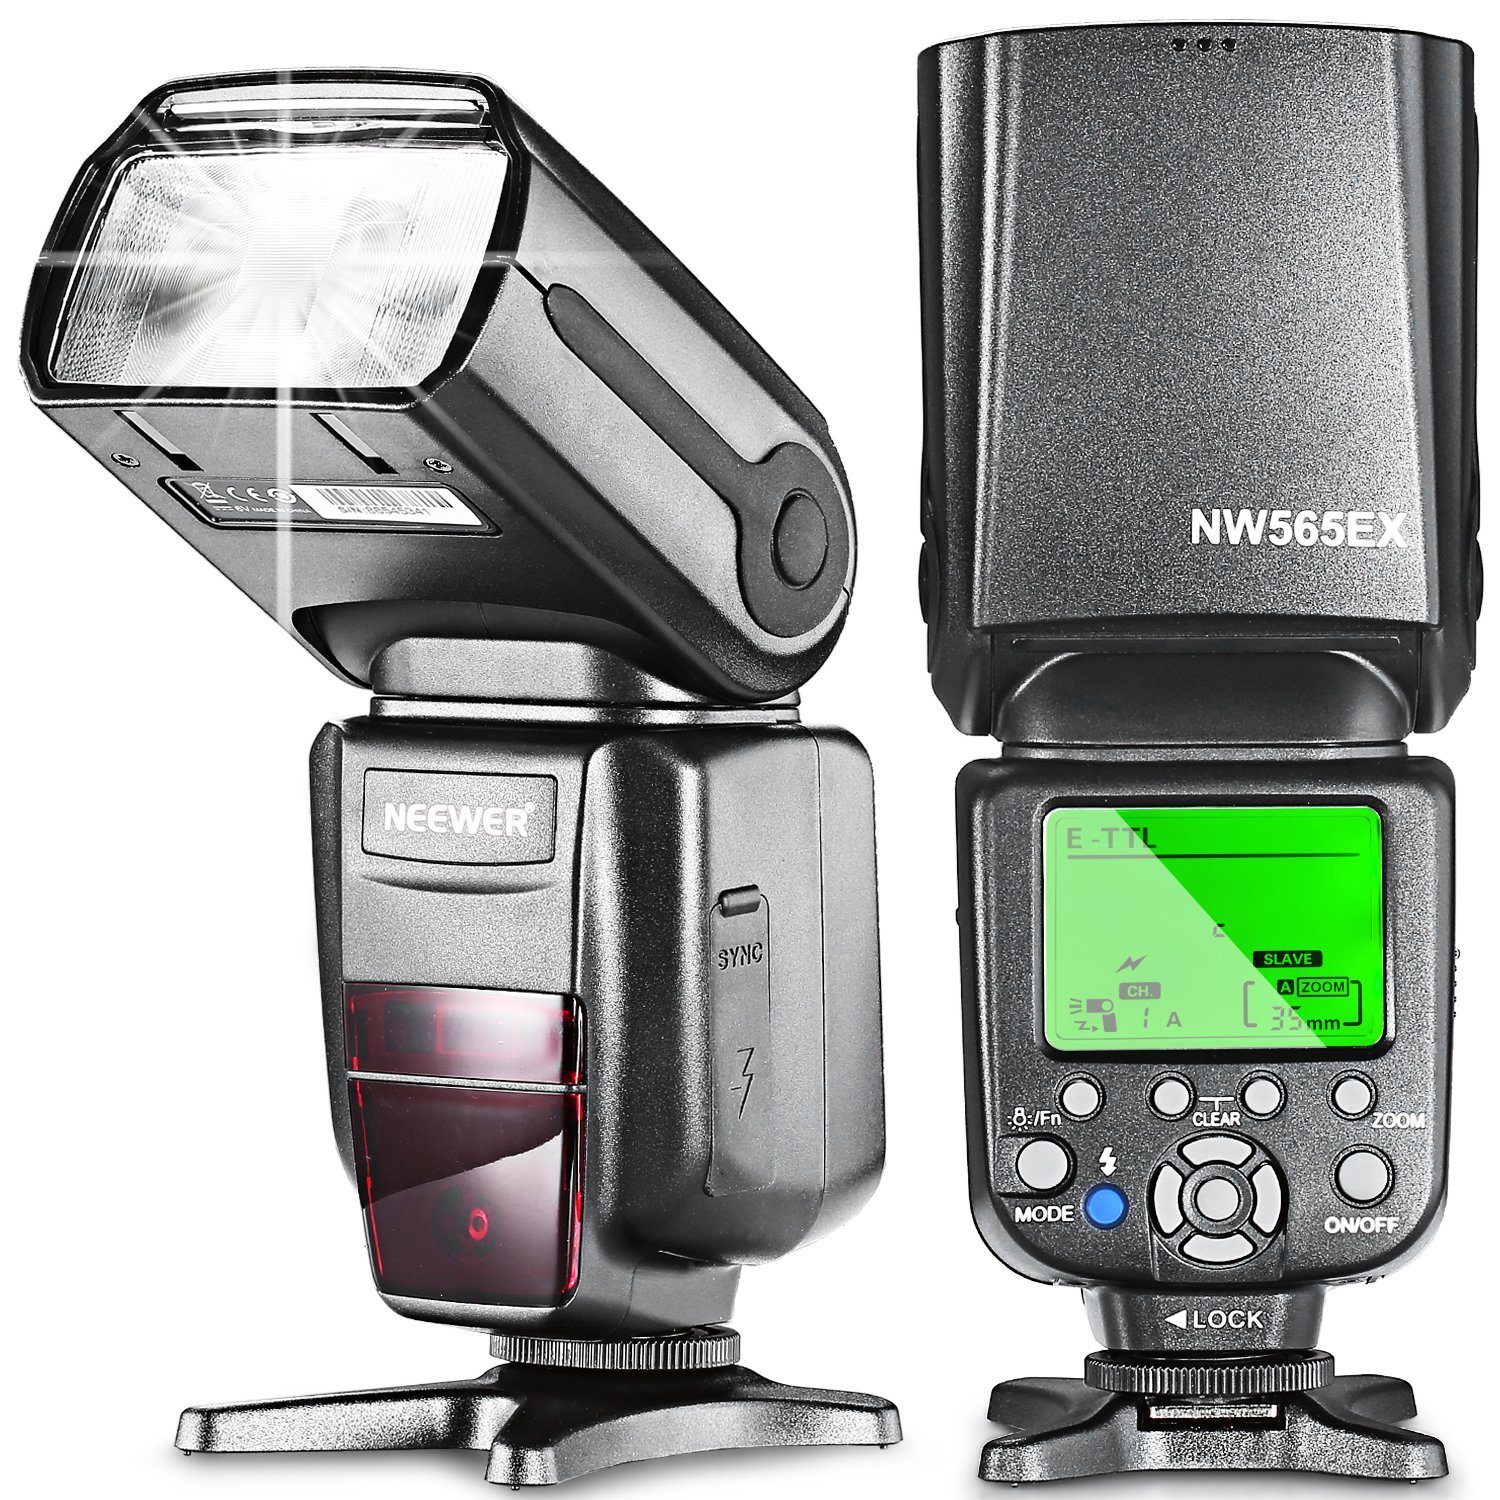 Neewer® NW-565 EXC E-TTL Slave Speedlite Flashlight with Flash Diffuser for Canon 5D II 7D, 30D, 40D, 50D, EOS 300D / EOS Digital Rebel, EOS 350D / EOS Kiss Digital N, EOS 400D / Digital Rebel Xti, EOS 1000D / EOS Rebel XS, EOS 500D / Digital Rebel T1i